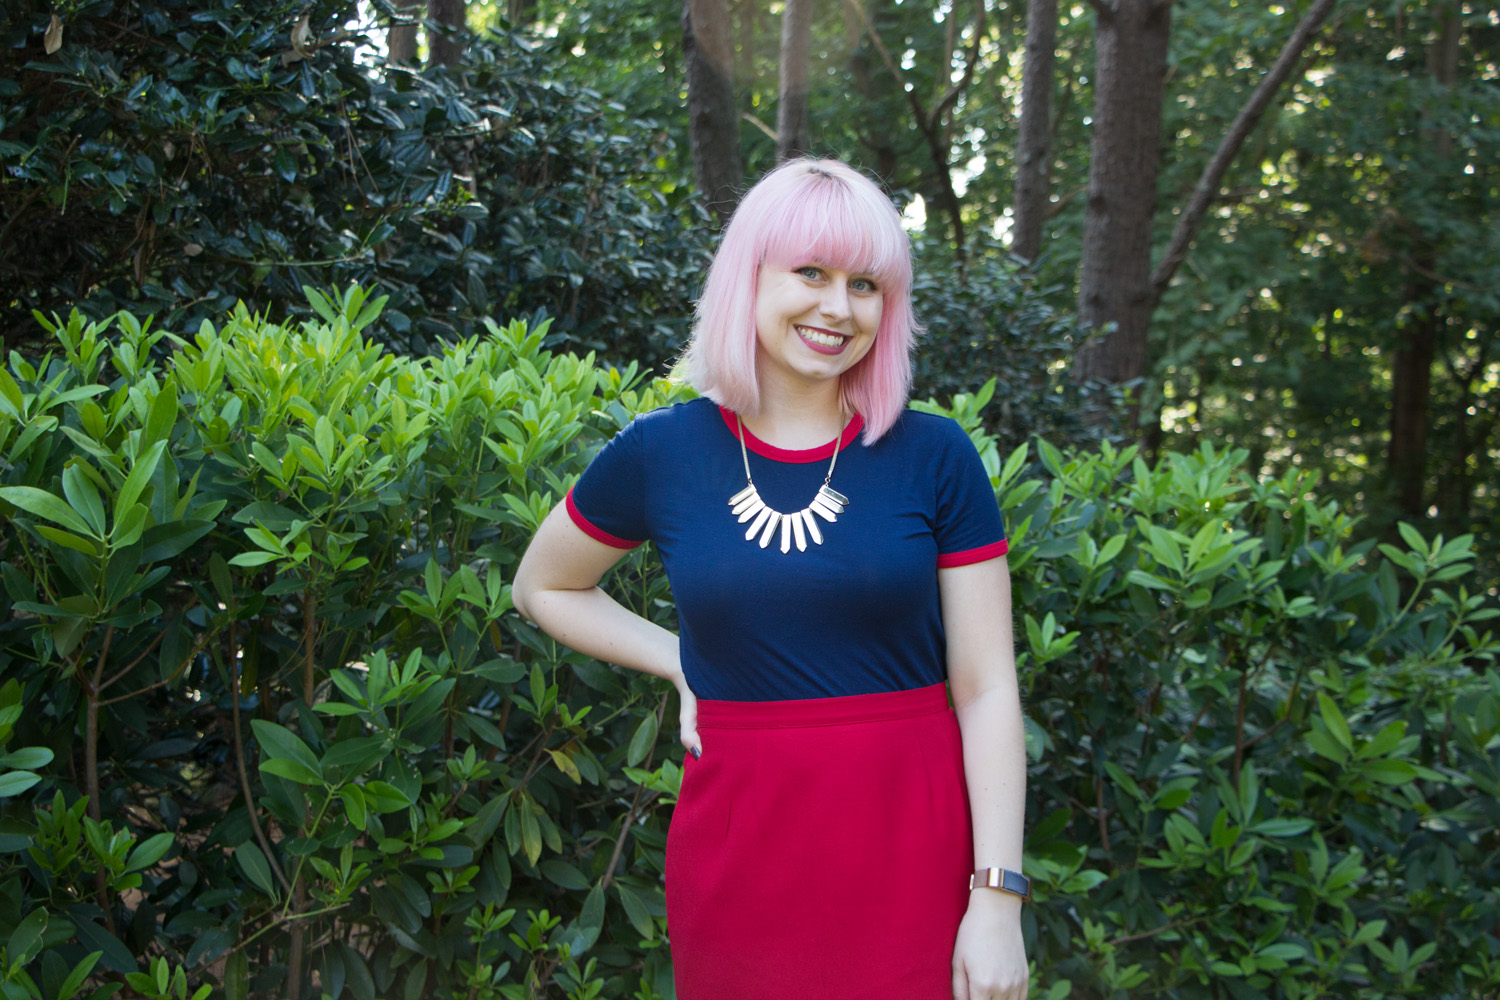 Light Pink Hair, Blue Ringer Tee and a Red Skirt